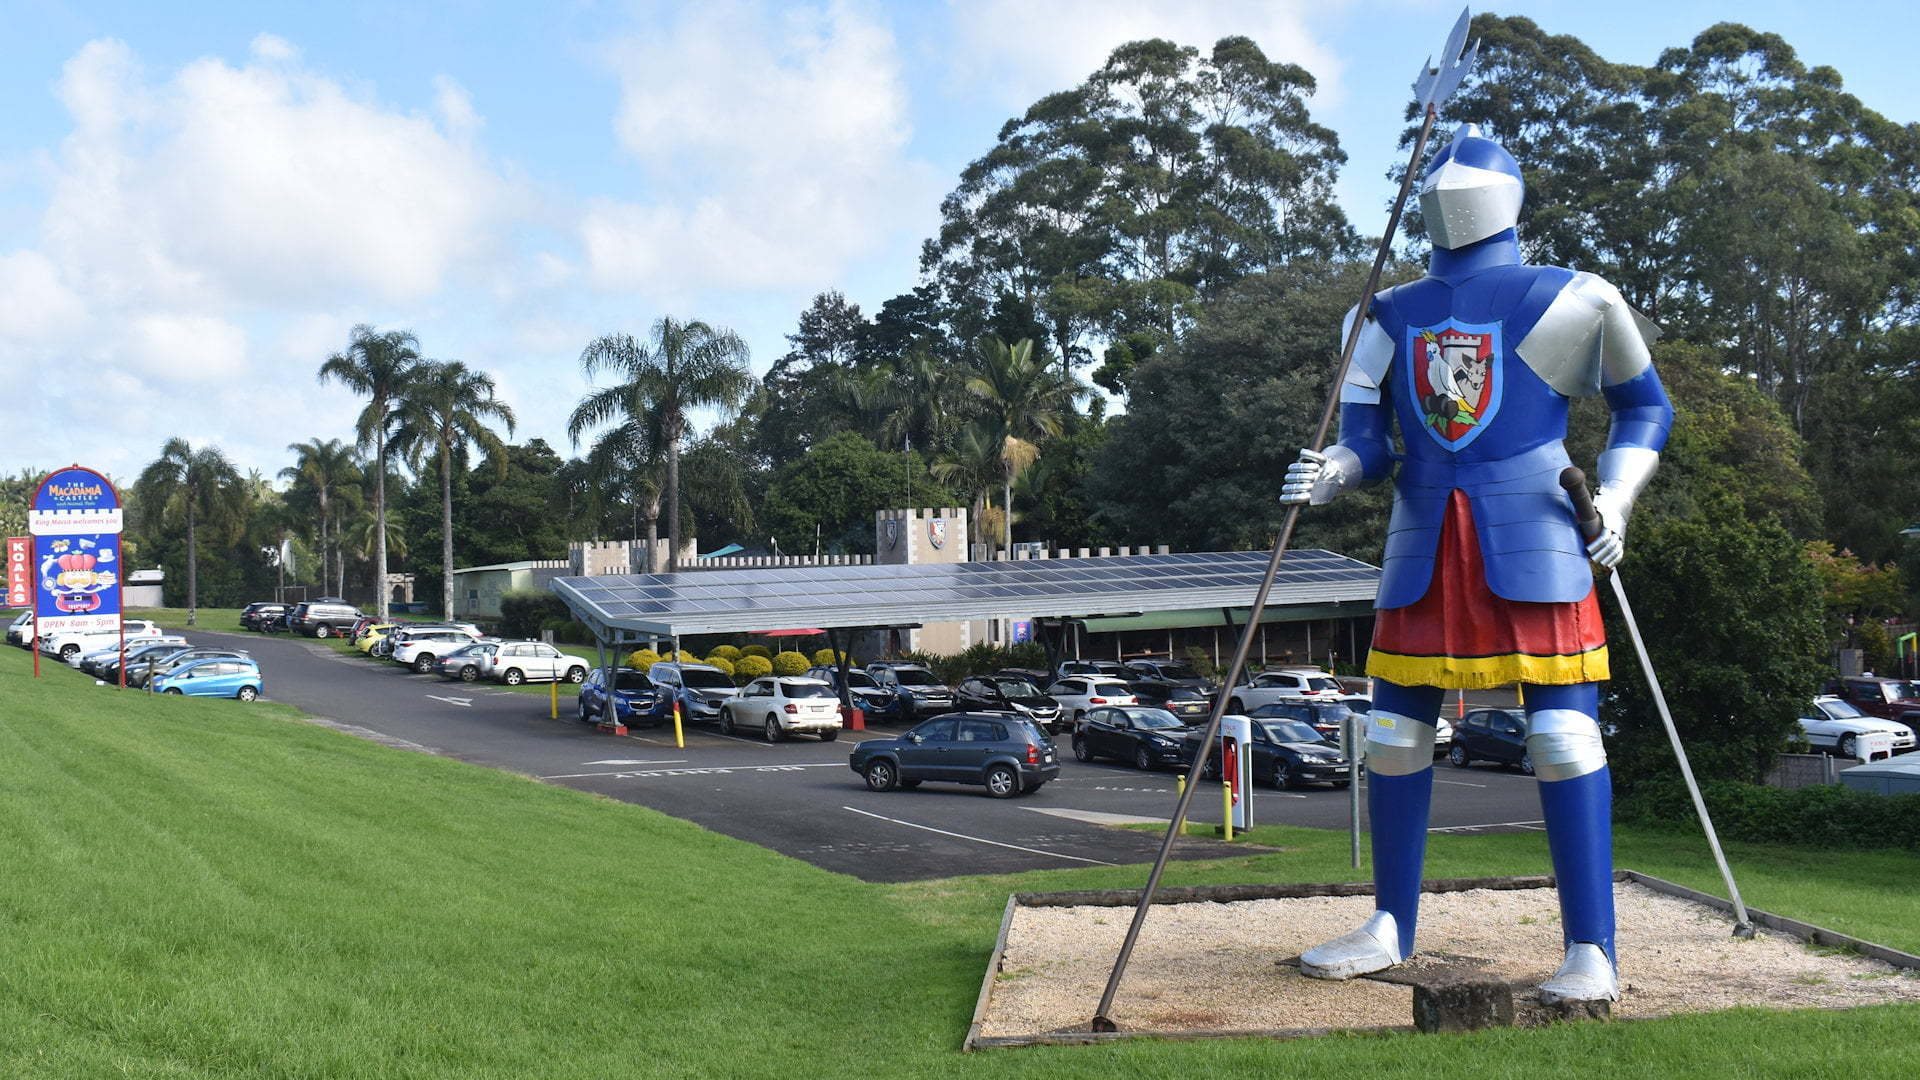 The Big Knight, one of Australia's big things outside the Macadamia Castle north of Ballina